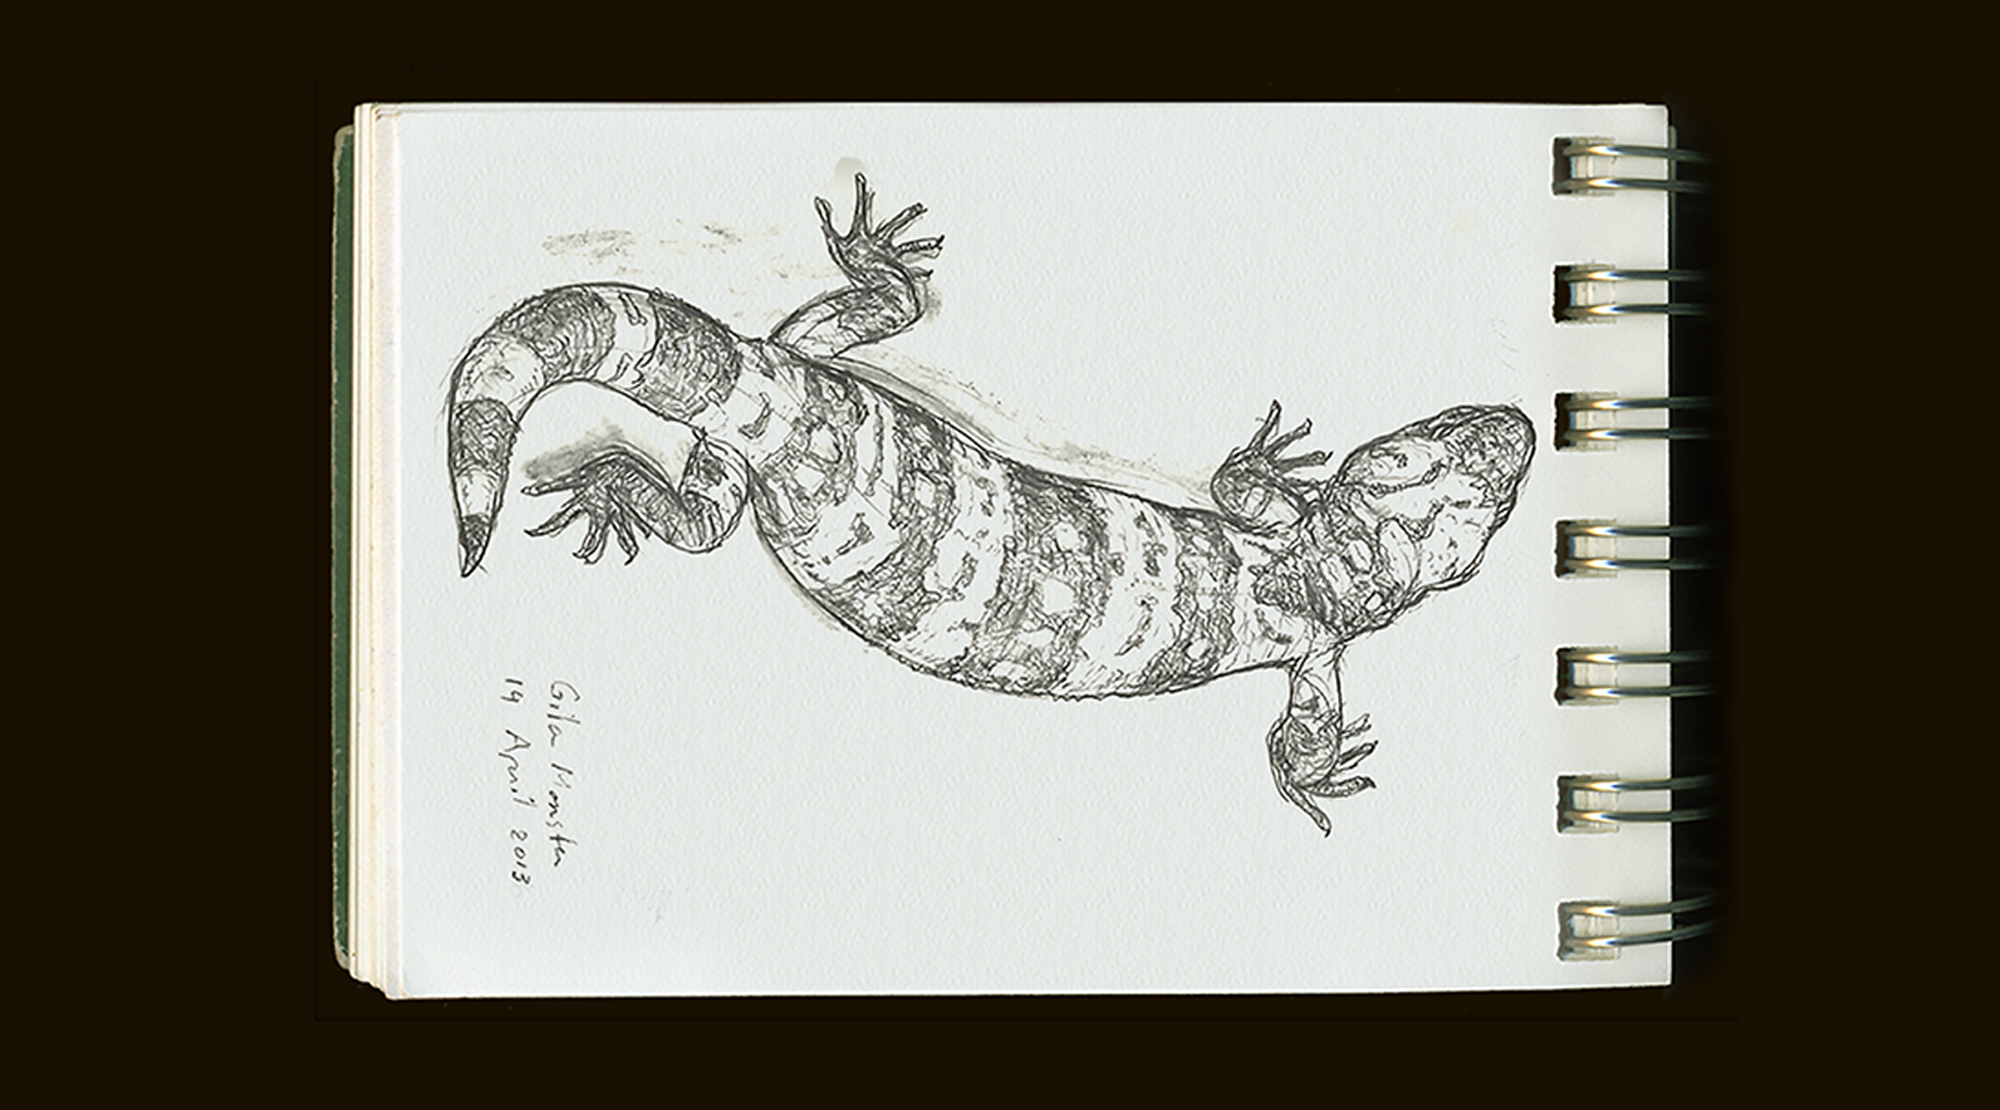 gila monster sketch by Barbara Terkanian